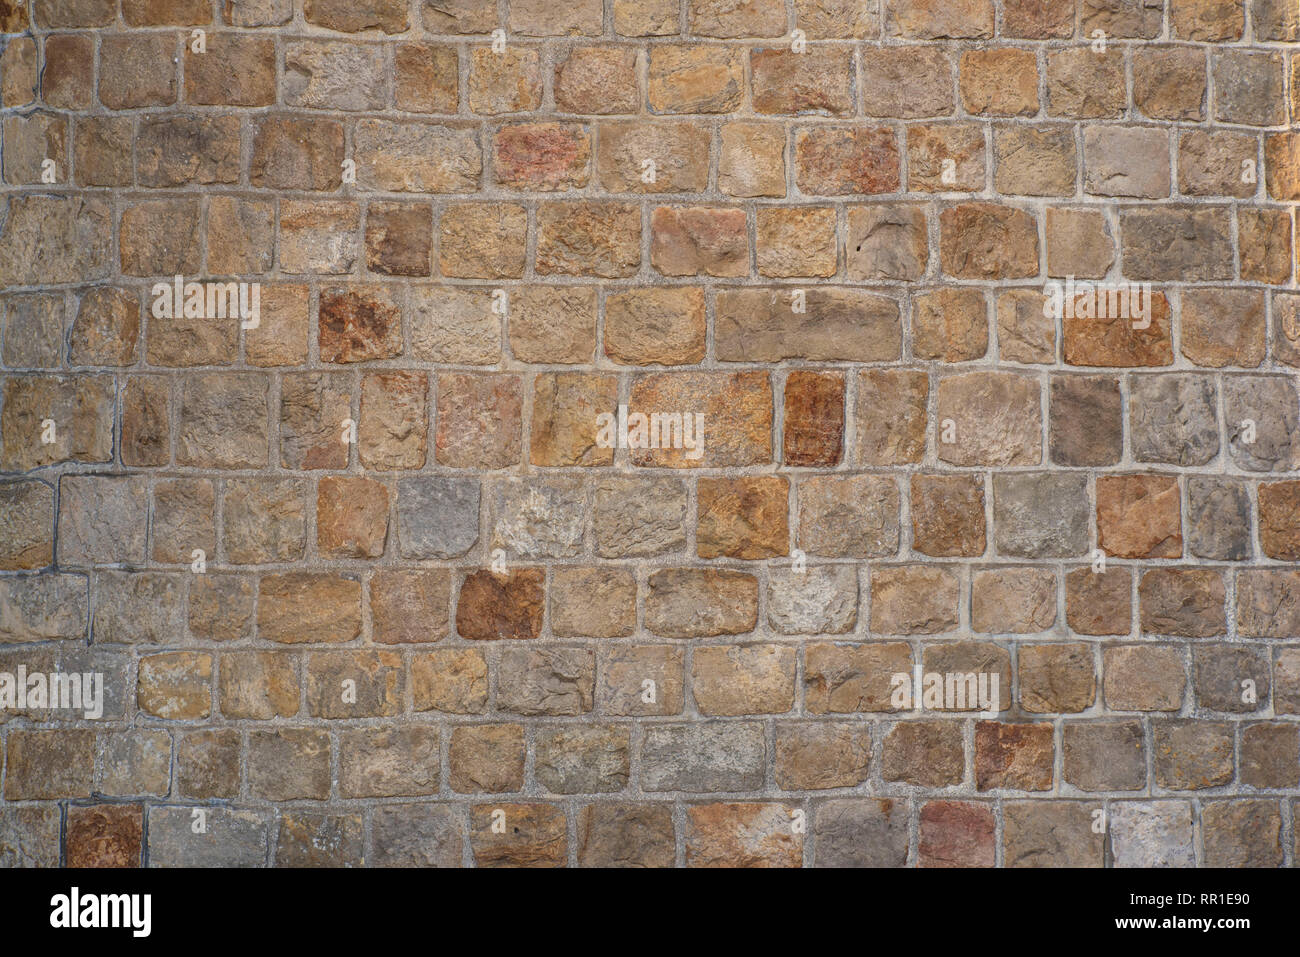 Stone wall of a medieval castle - Stock Image